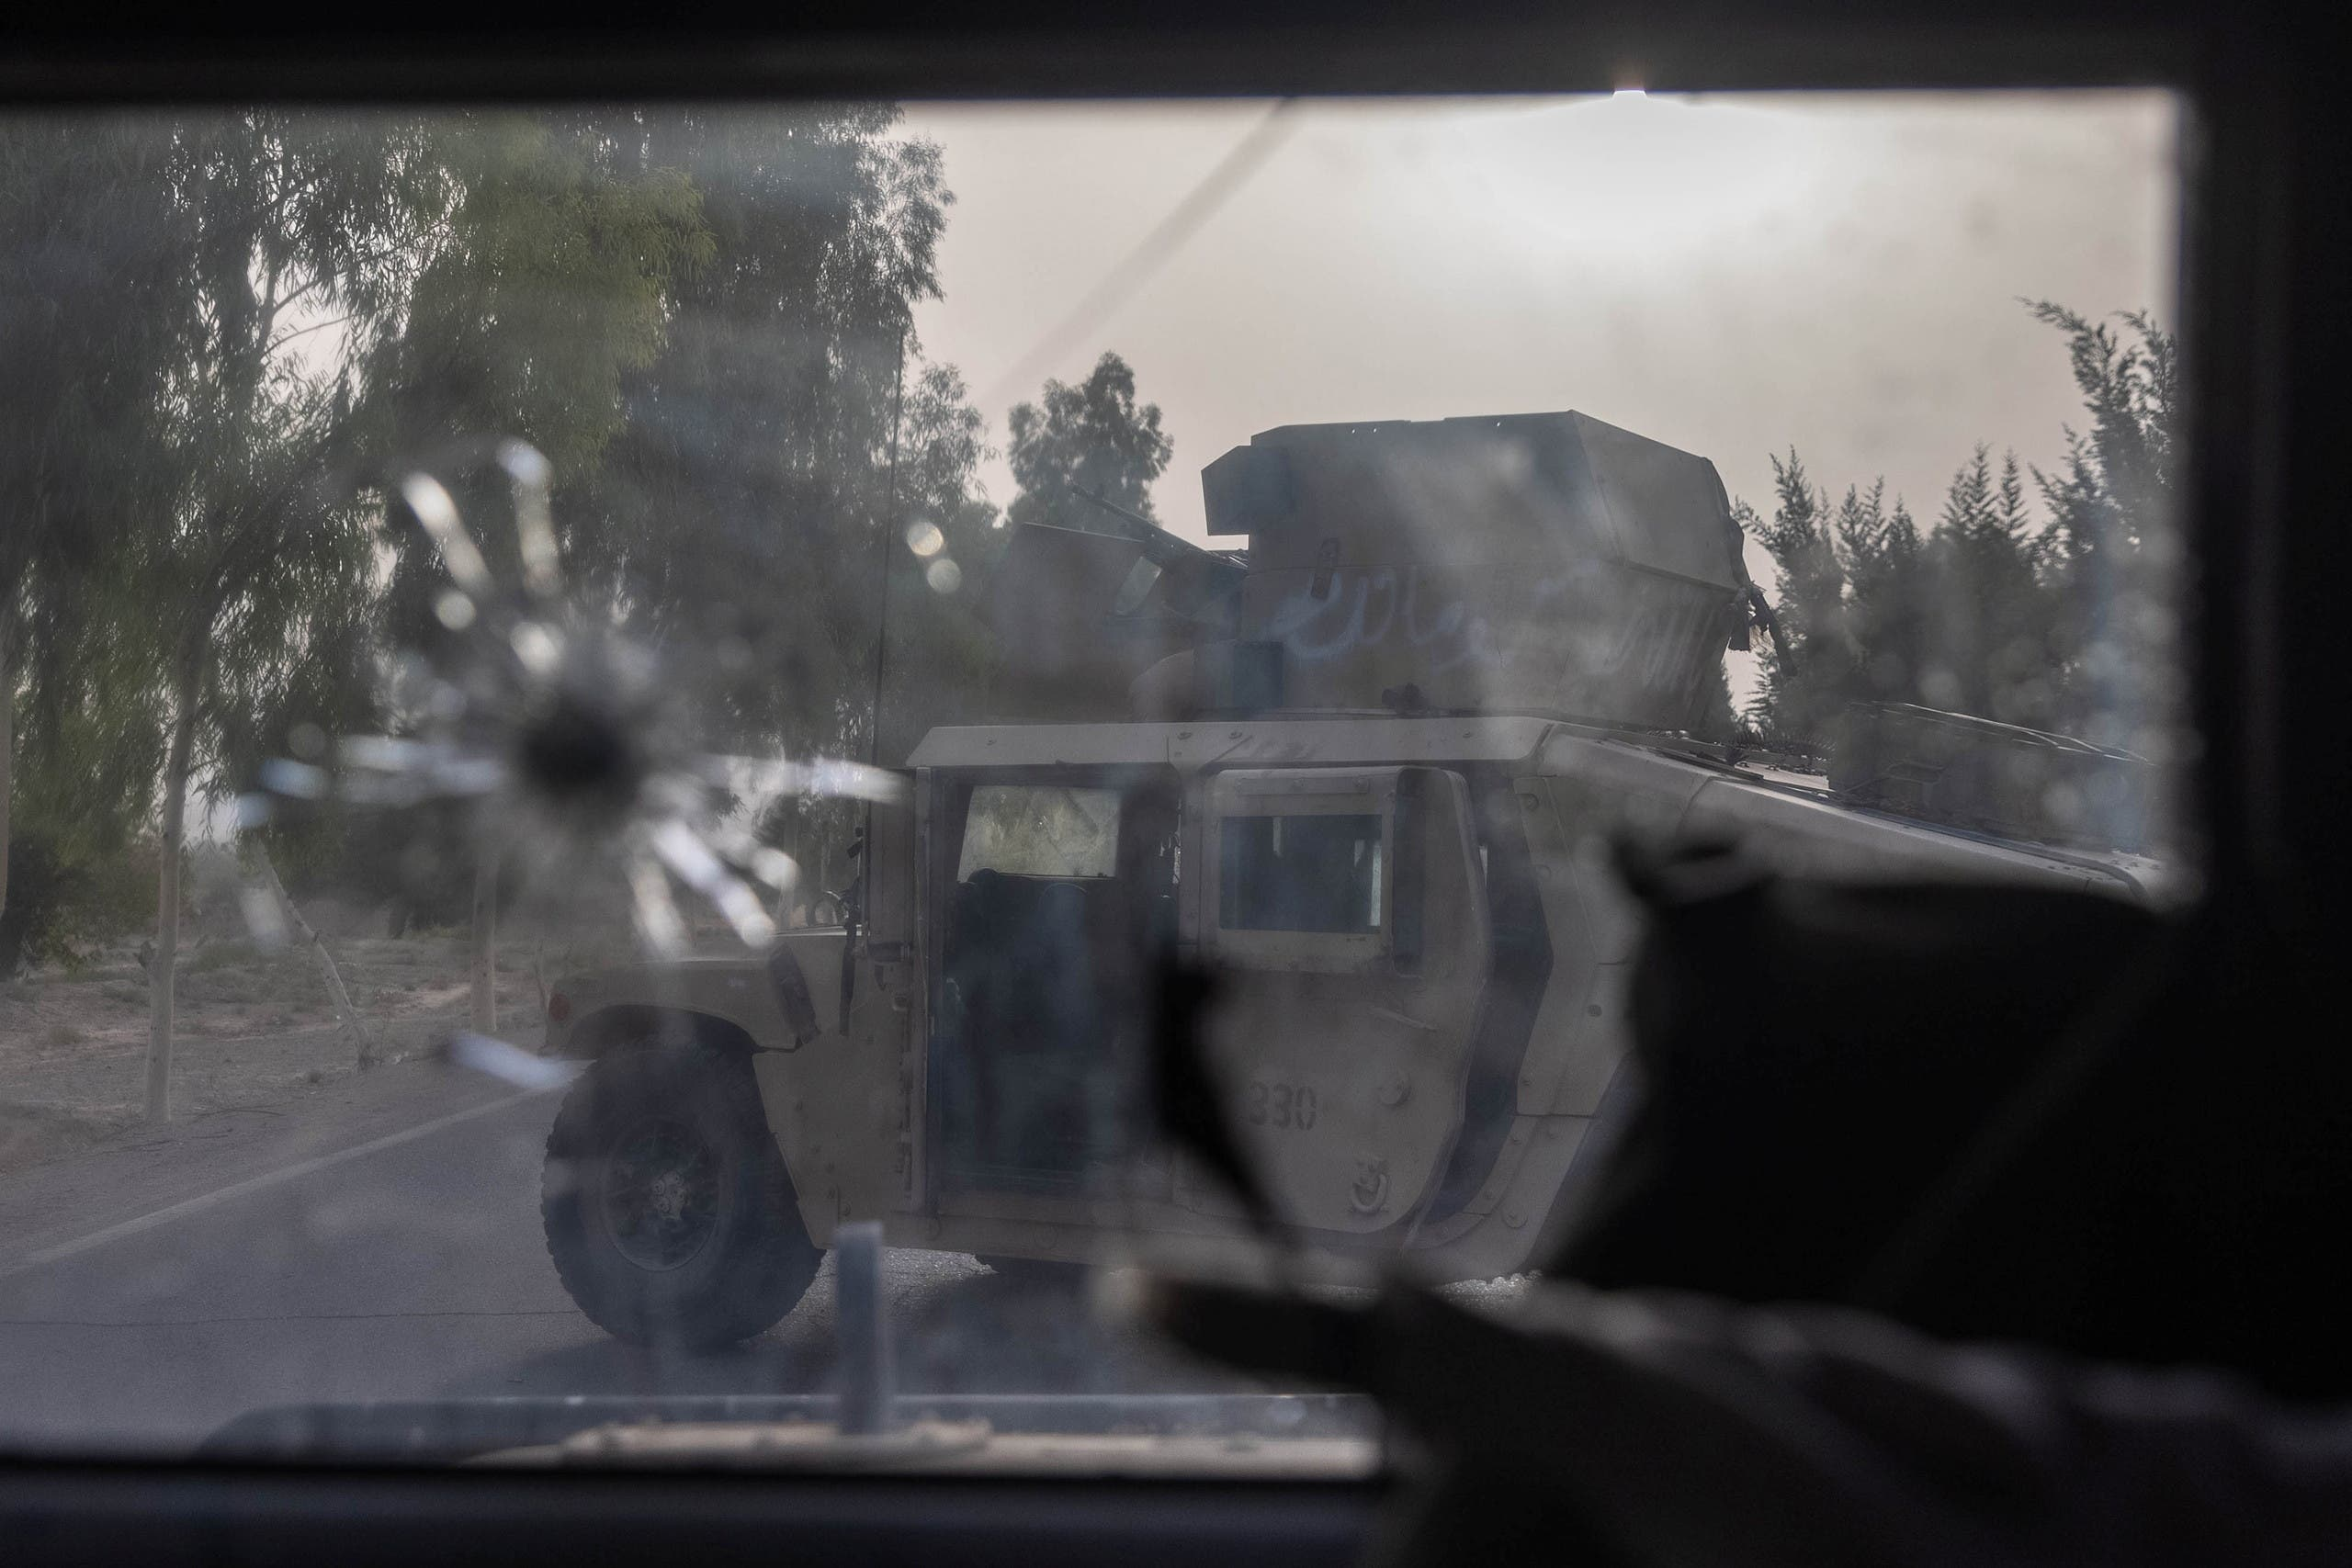 A humvee belonging Afghan Special Forces is seen destroyed during heavy clashes with Taliban during the rescue mission of a police officer besieged at a check post, in Kandahar province, Afghanistan, July 13, 2021. (Reuters)